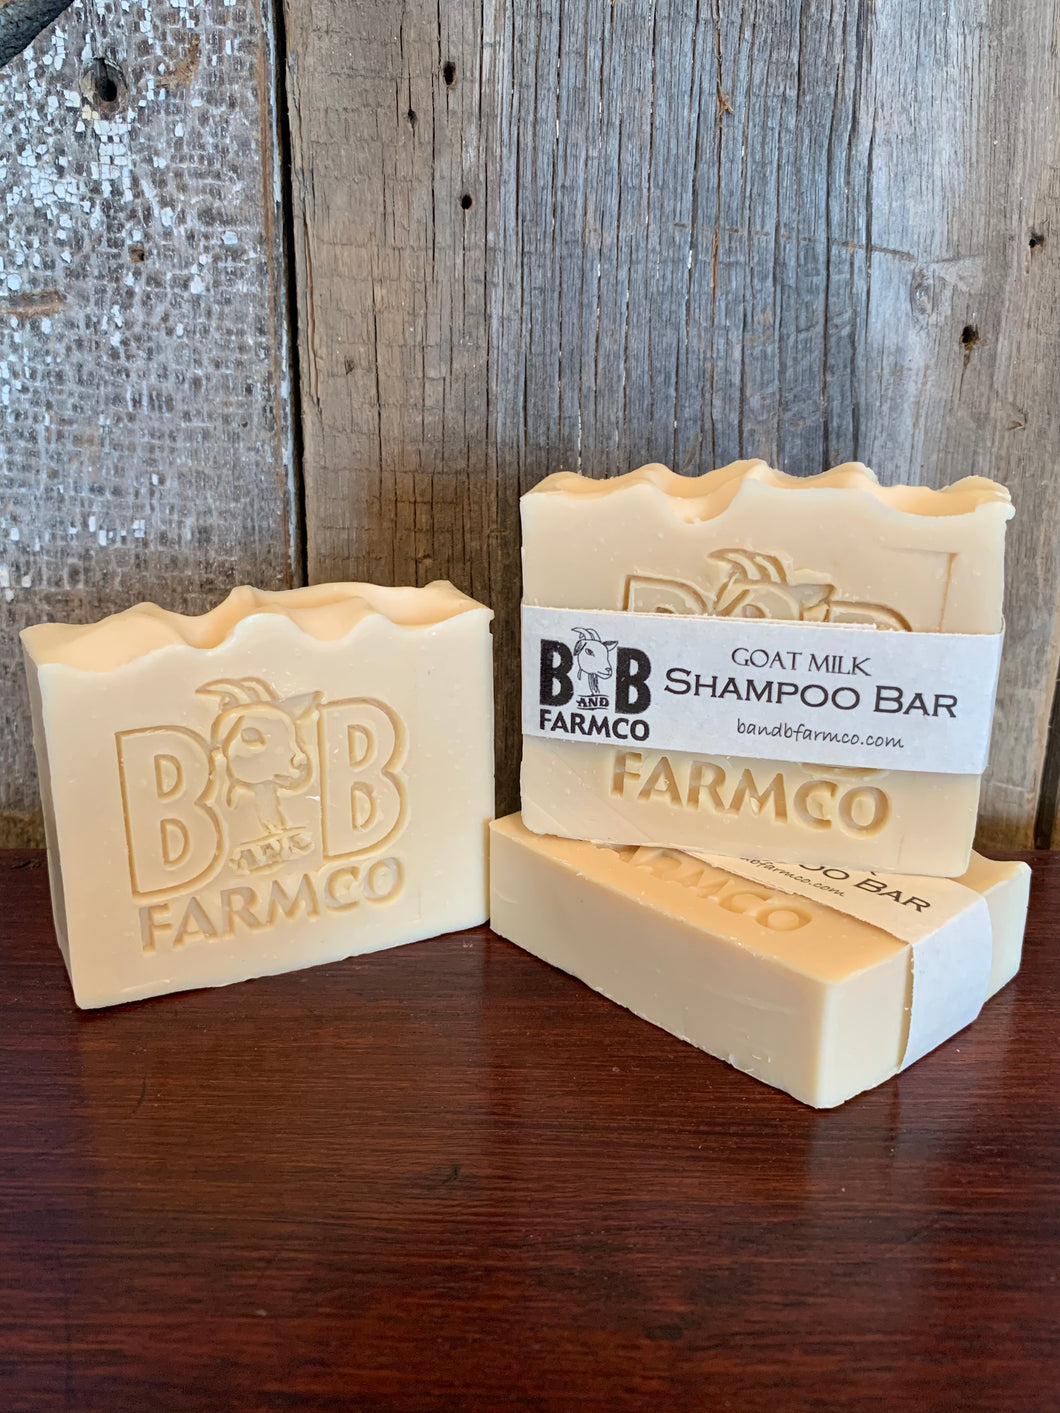 Goat Milk Shampoo Bar